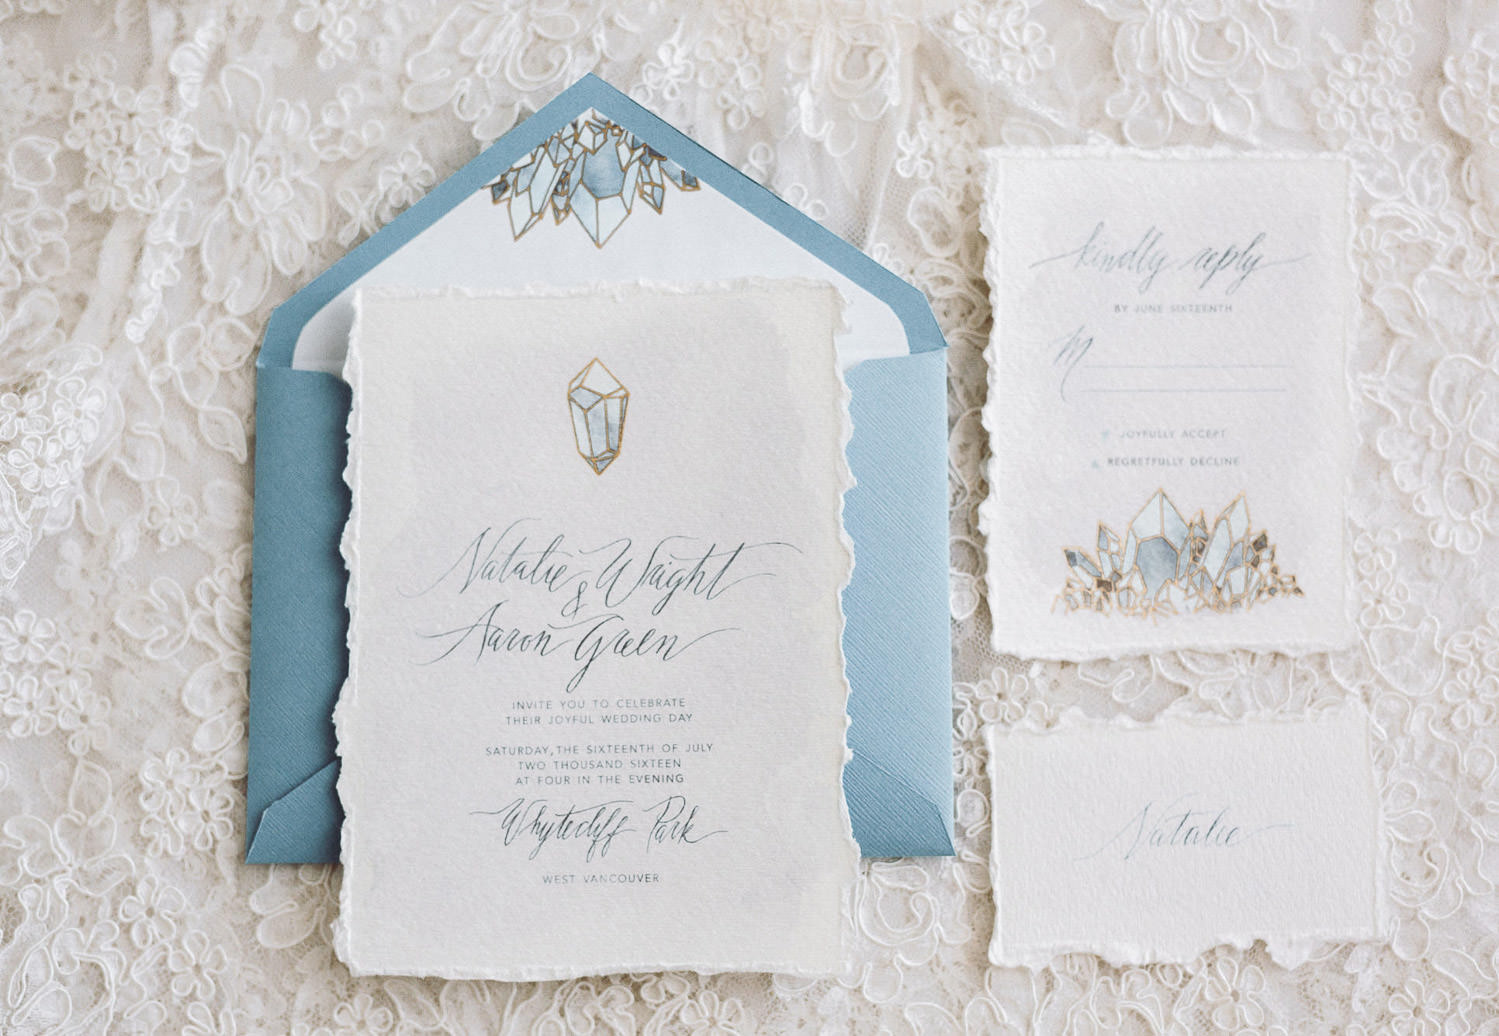 Bespoke wedding invite with modern calligraphy and watercolors designed by Camilla Anchisi